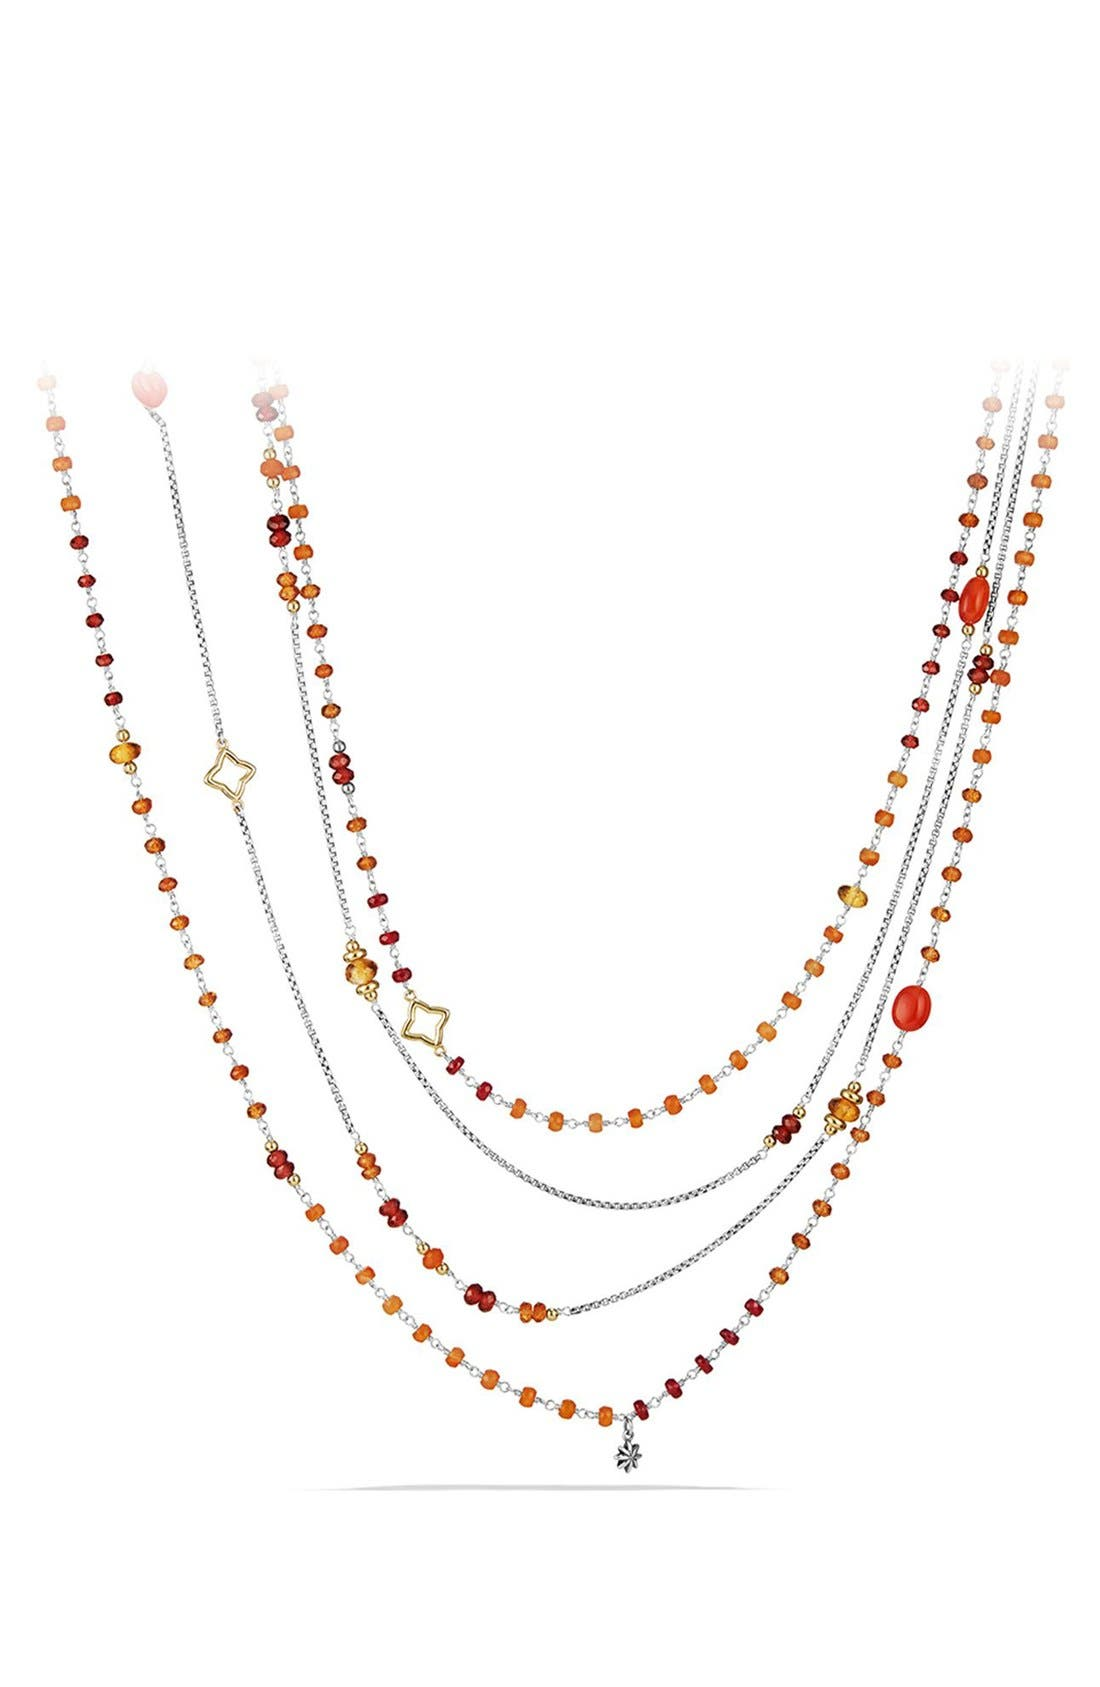 David Yurman 'Bead and Chain' Bead Necklace with Carnelian, Garnet & 18K Gold